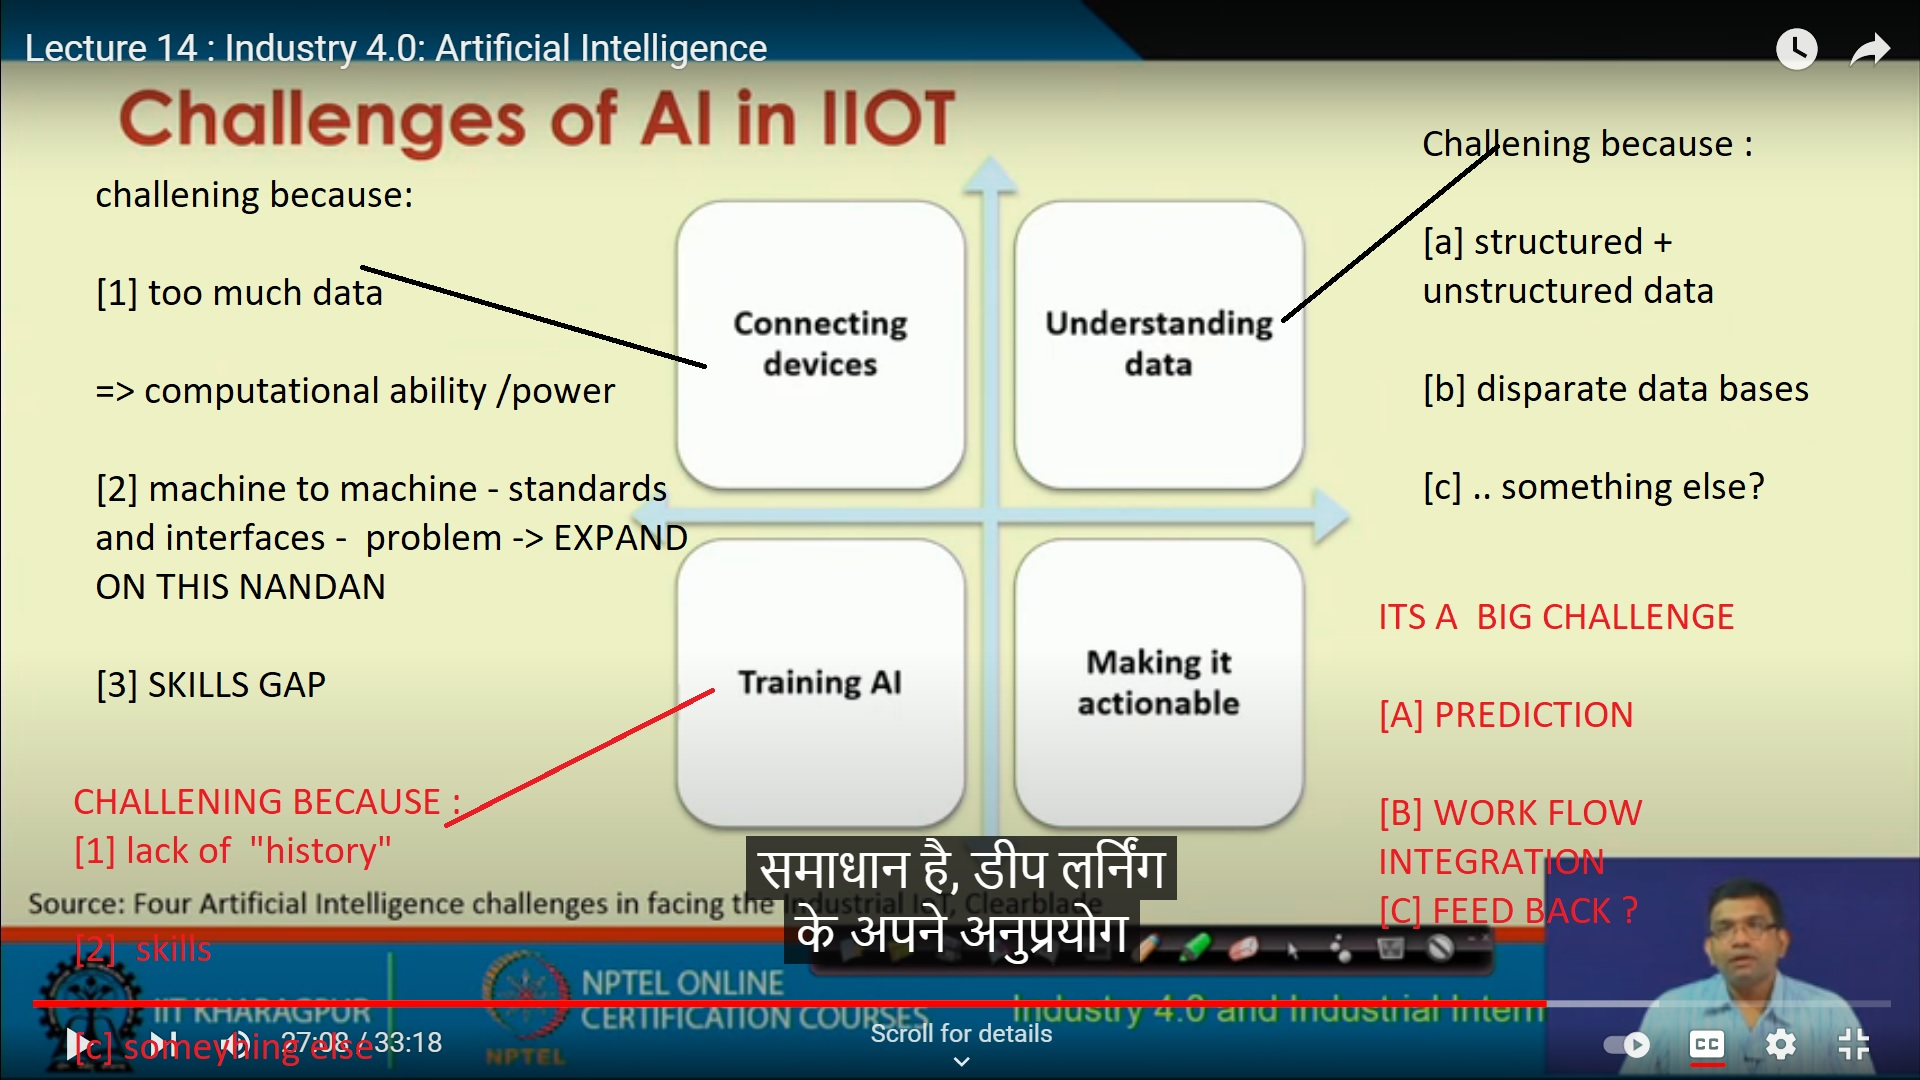 CHALELNGES OF AI IN INDUSTRY 4.0 - NANDNA, TELL ME IF THIS IS SOMEHWAT OK - REGARDS AJAY MISHRA